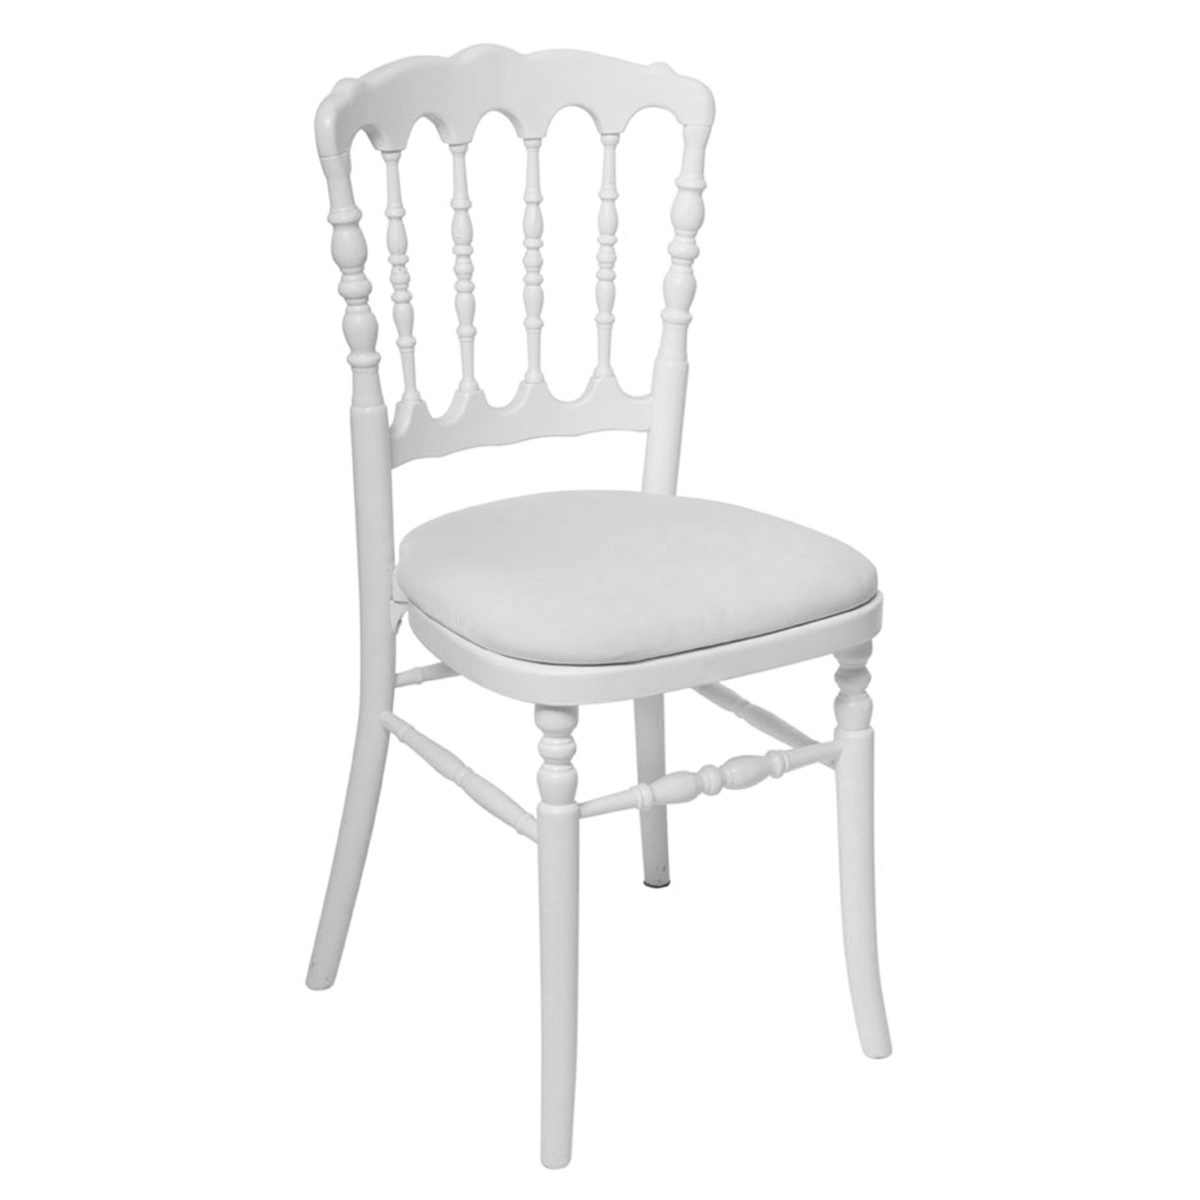 Chaise napoleon blanche abc location for Chaise napoleon blanche